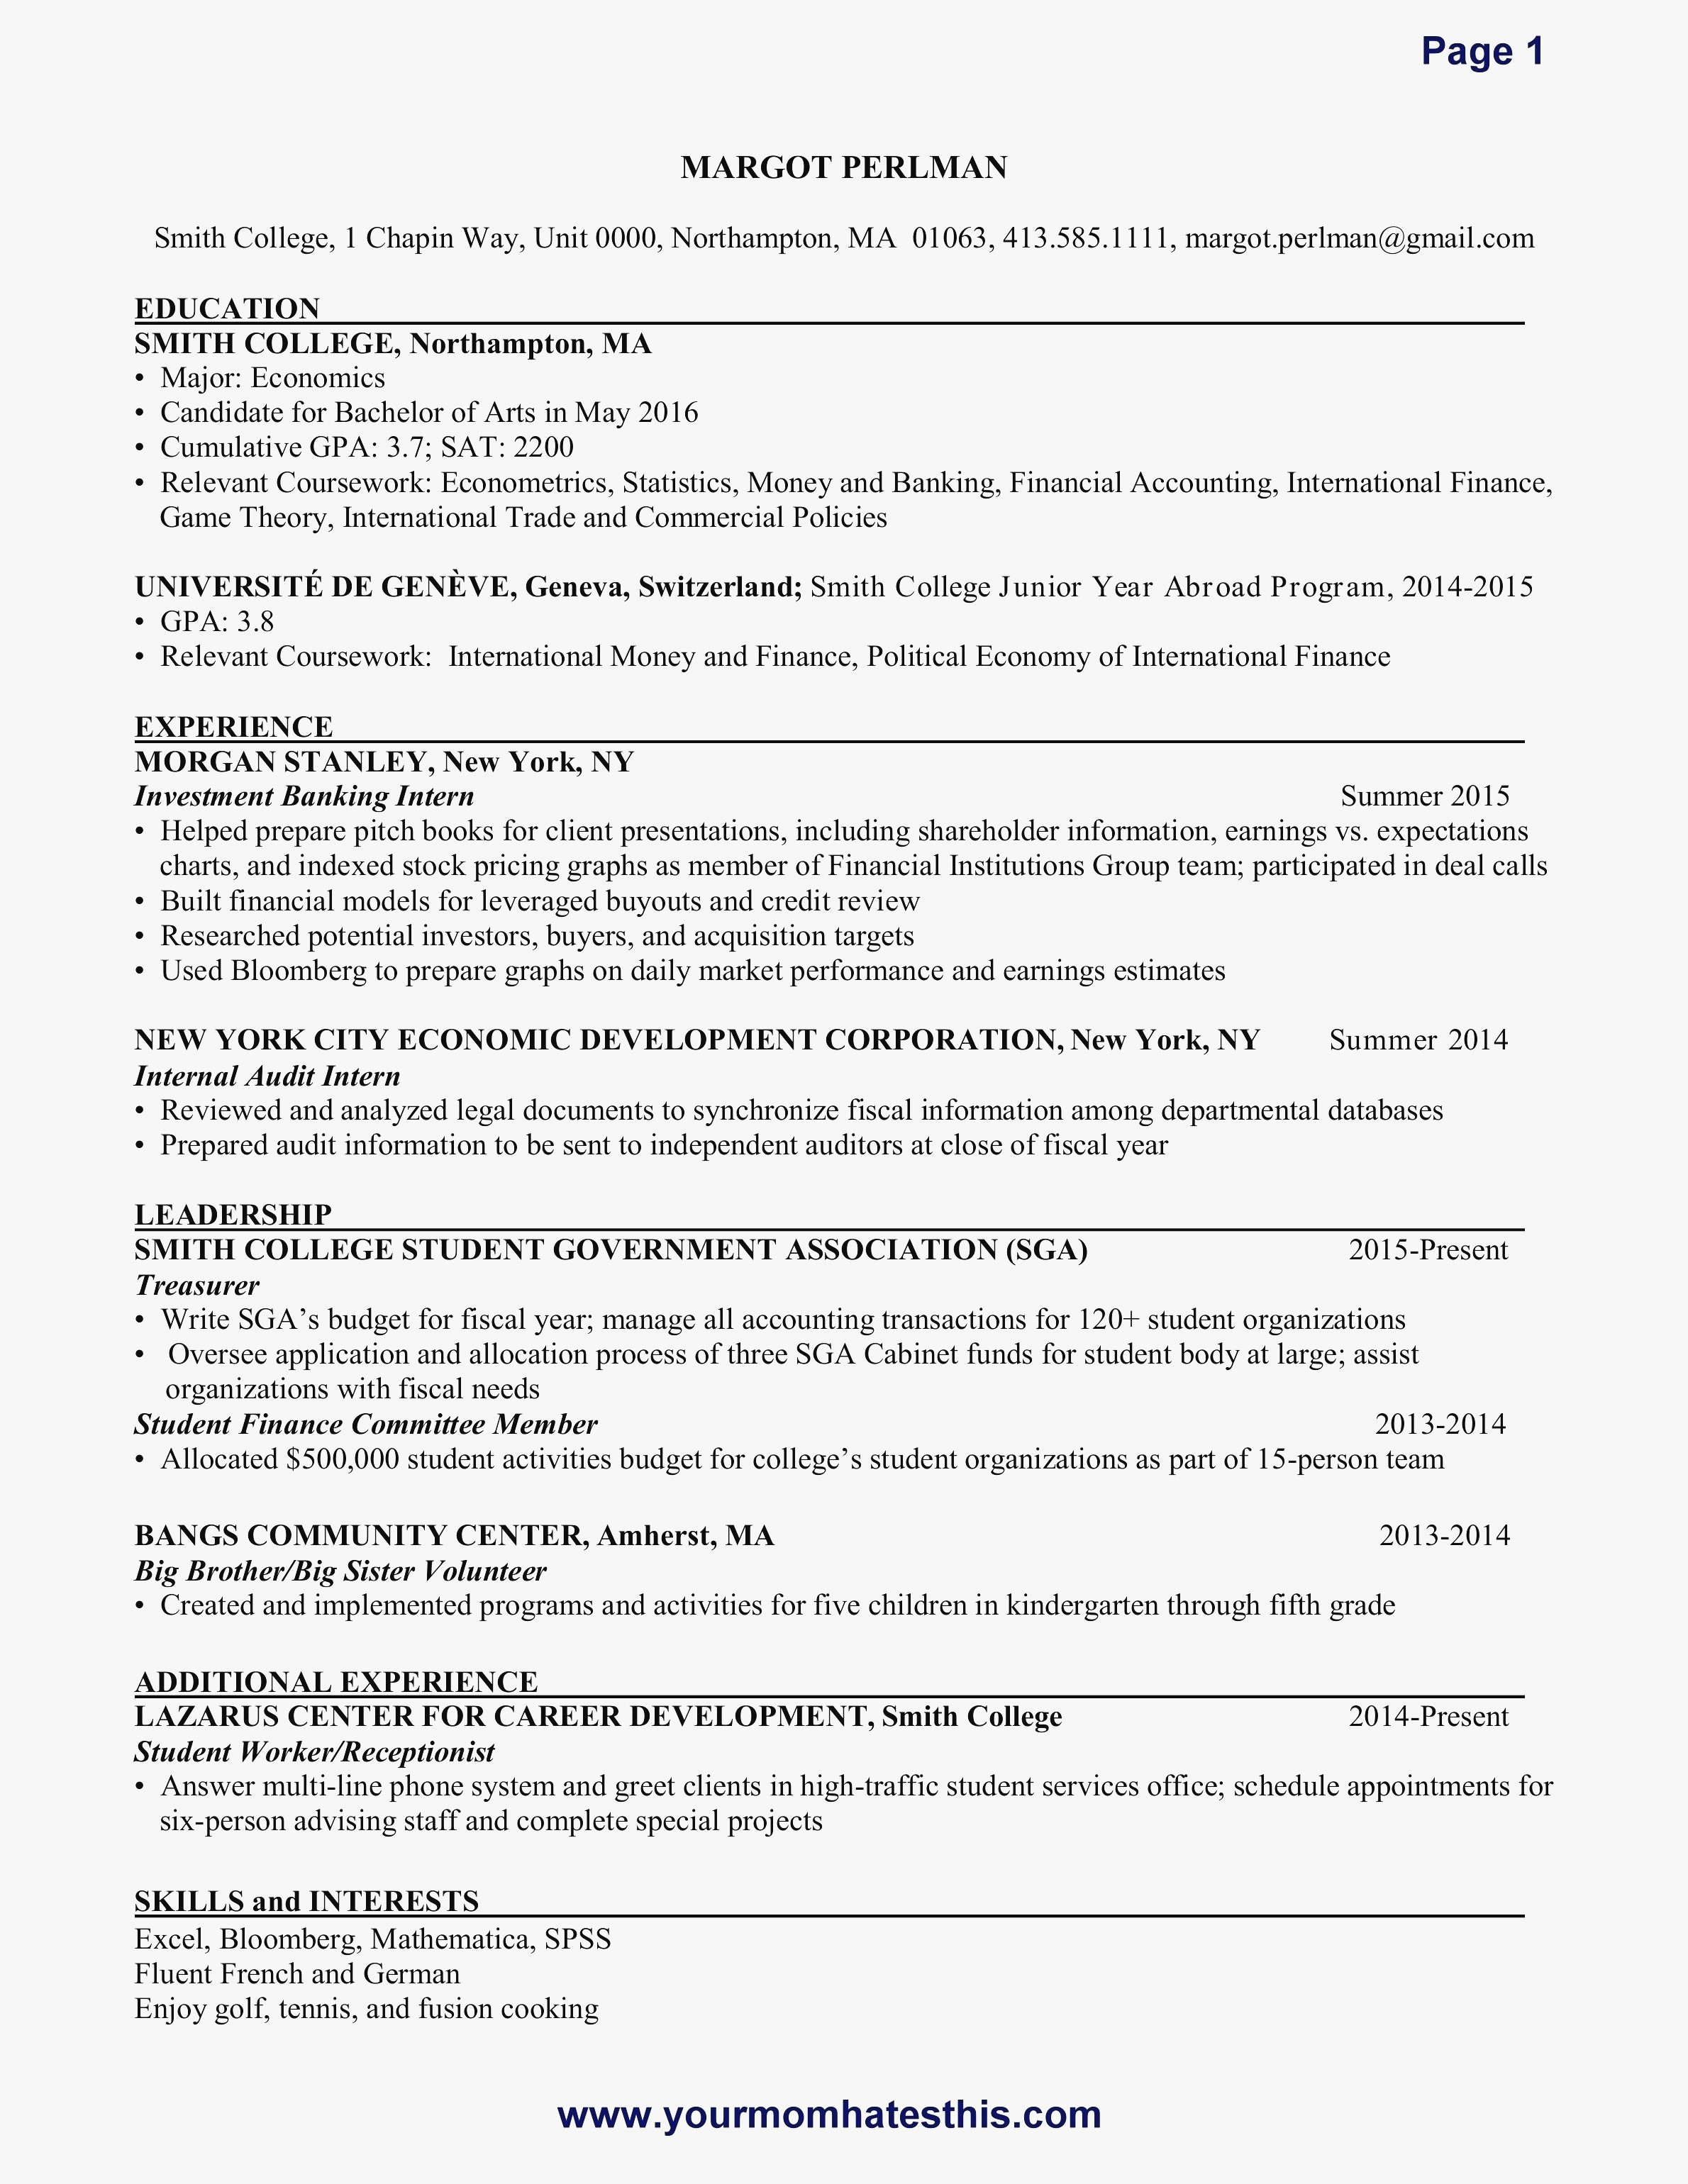 Cyber Resume - Information Security Resume Examples Free Downloads Cyber Security